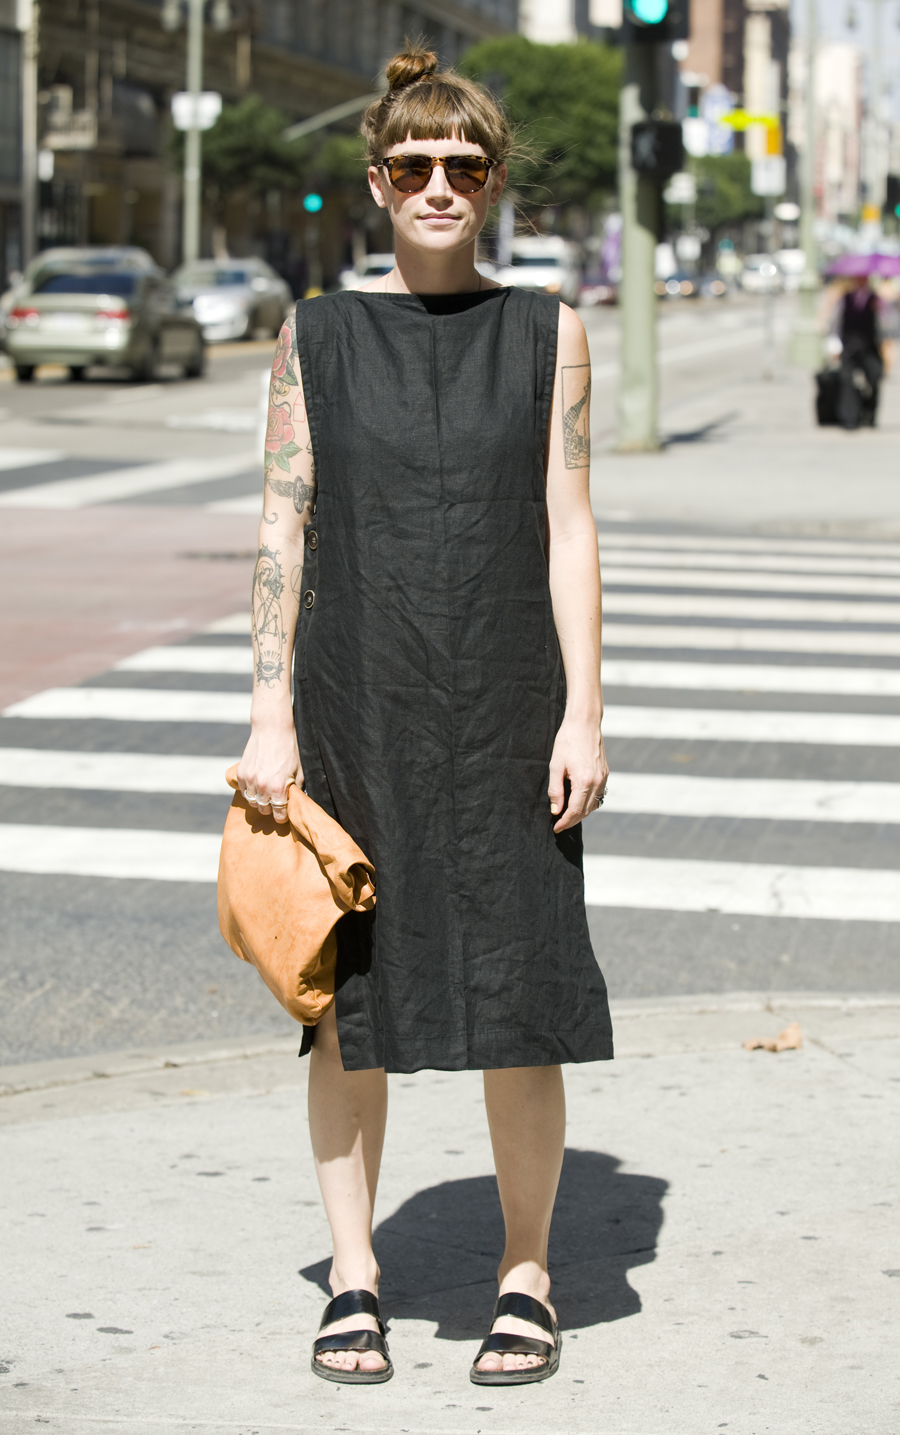 Claire Boutelle, 25, wears a dress of her own design.